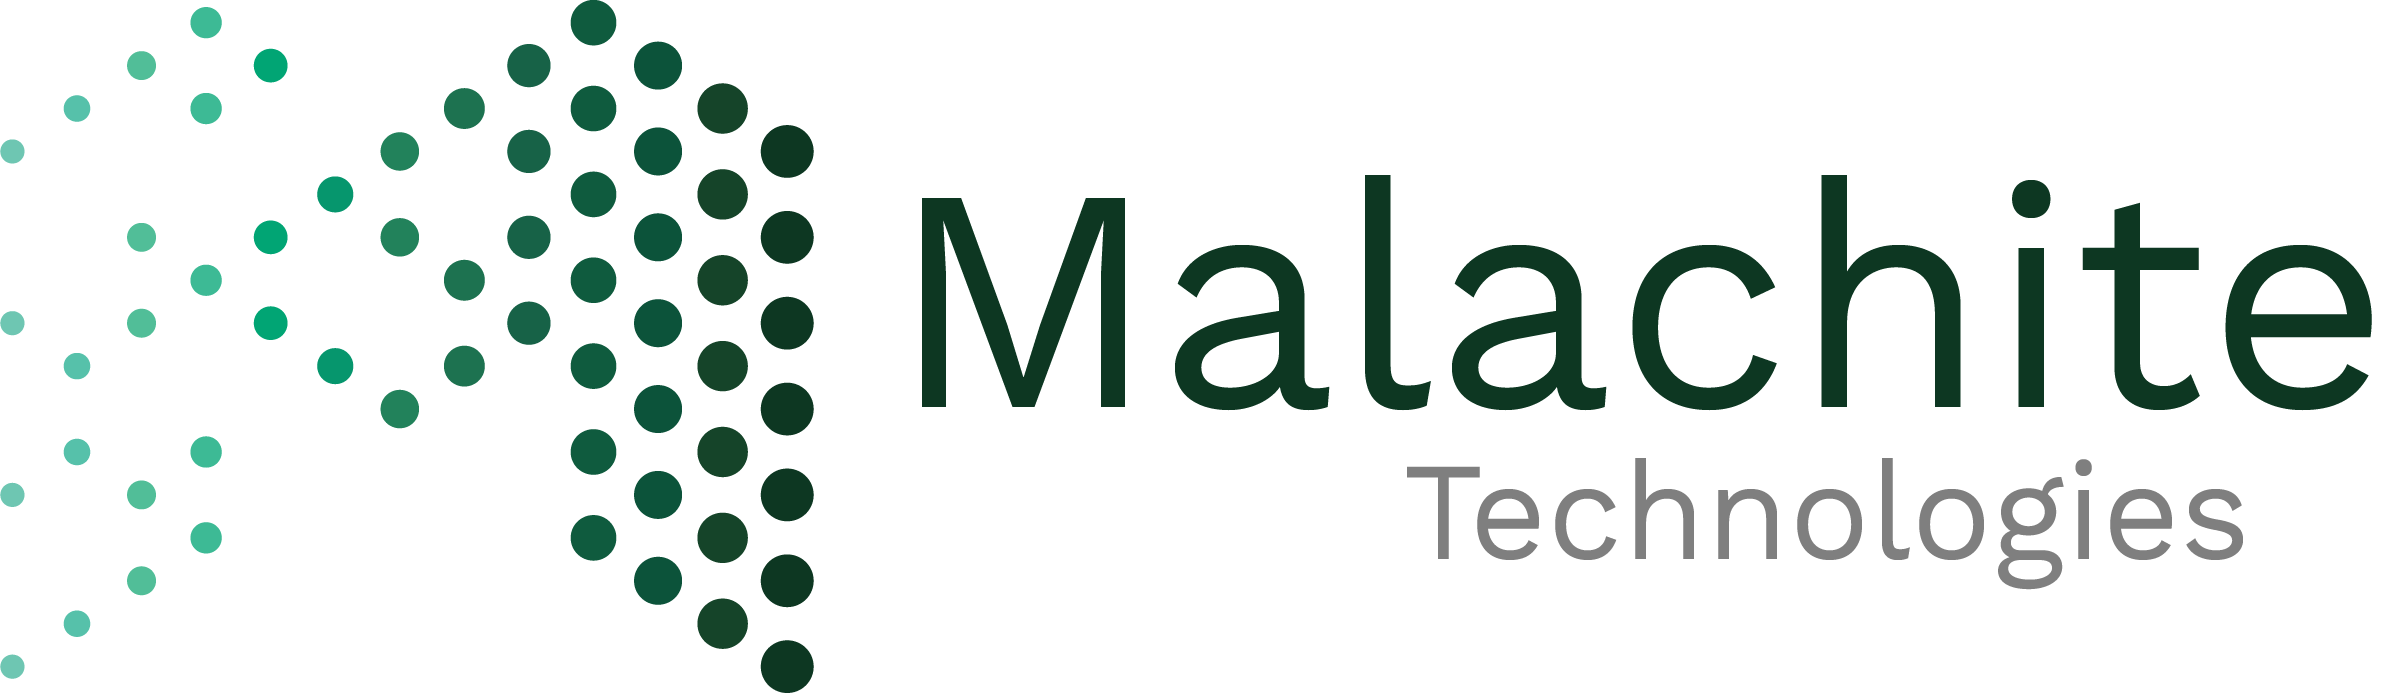 Malachite Technologies | San Francisco | Materials Engineering